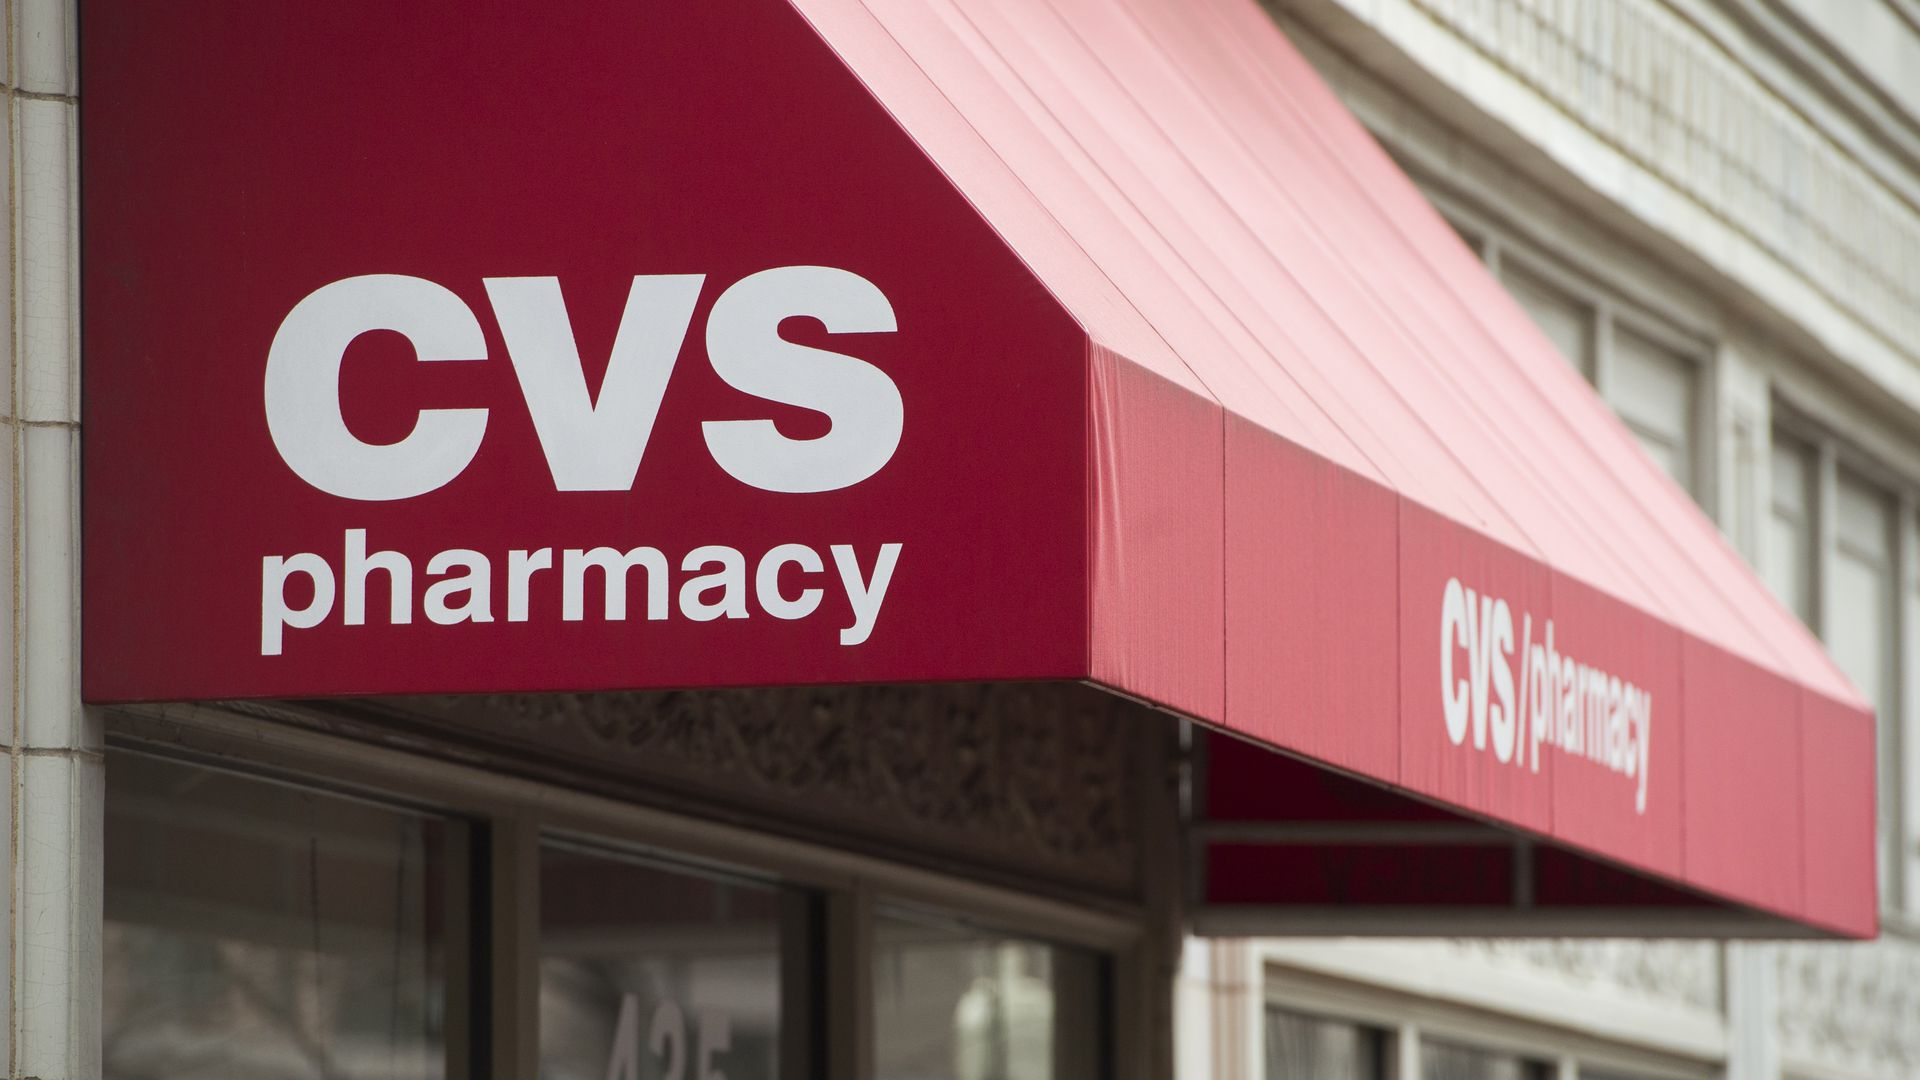 An awning that reads CVS pharmacy.